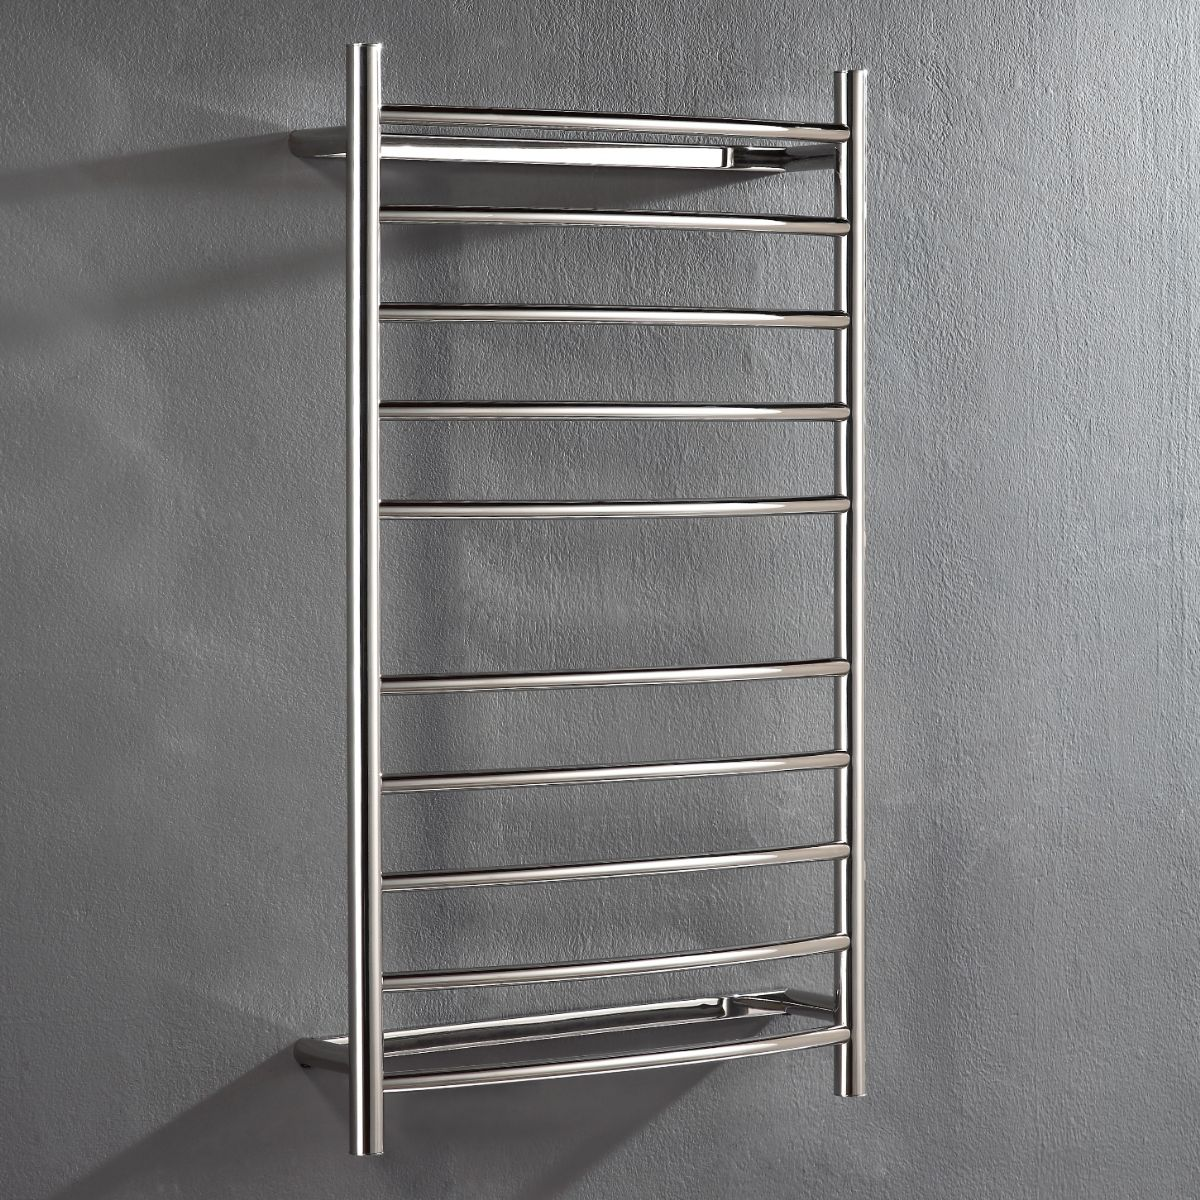 Unheated Towel Rail: HOTWIRE™ Curve R10c 'Easy Fix' Round Curved 10 Bar, Polished